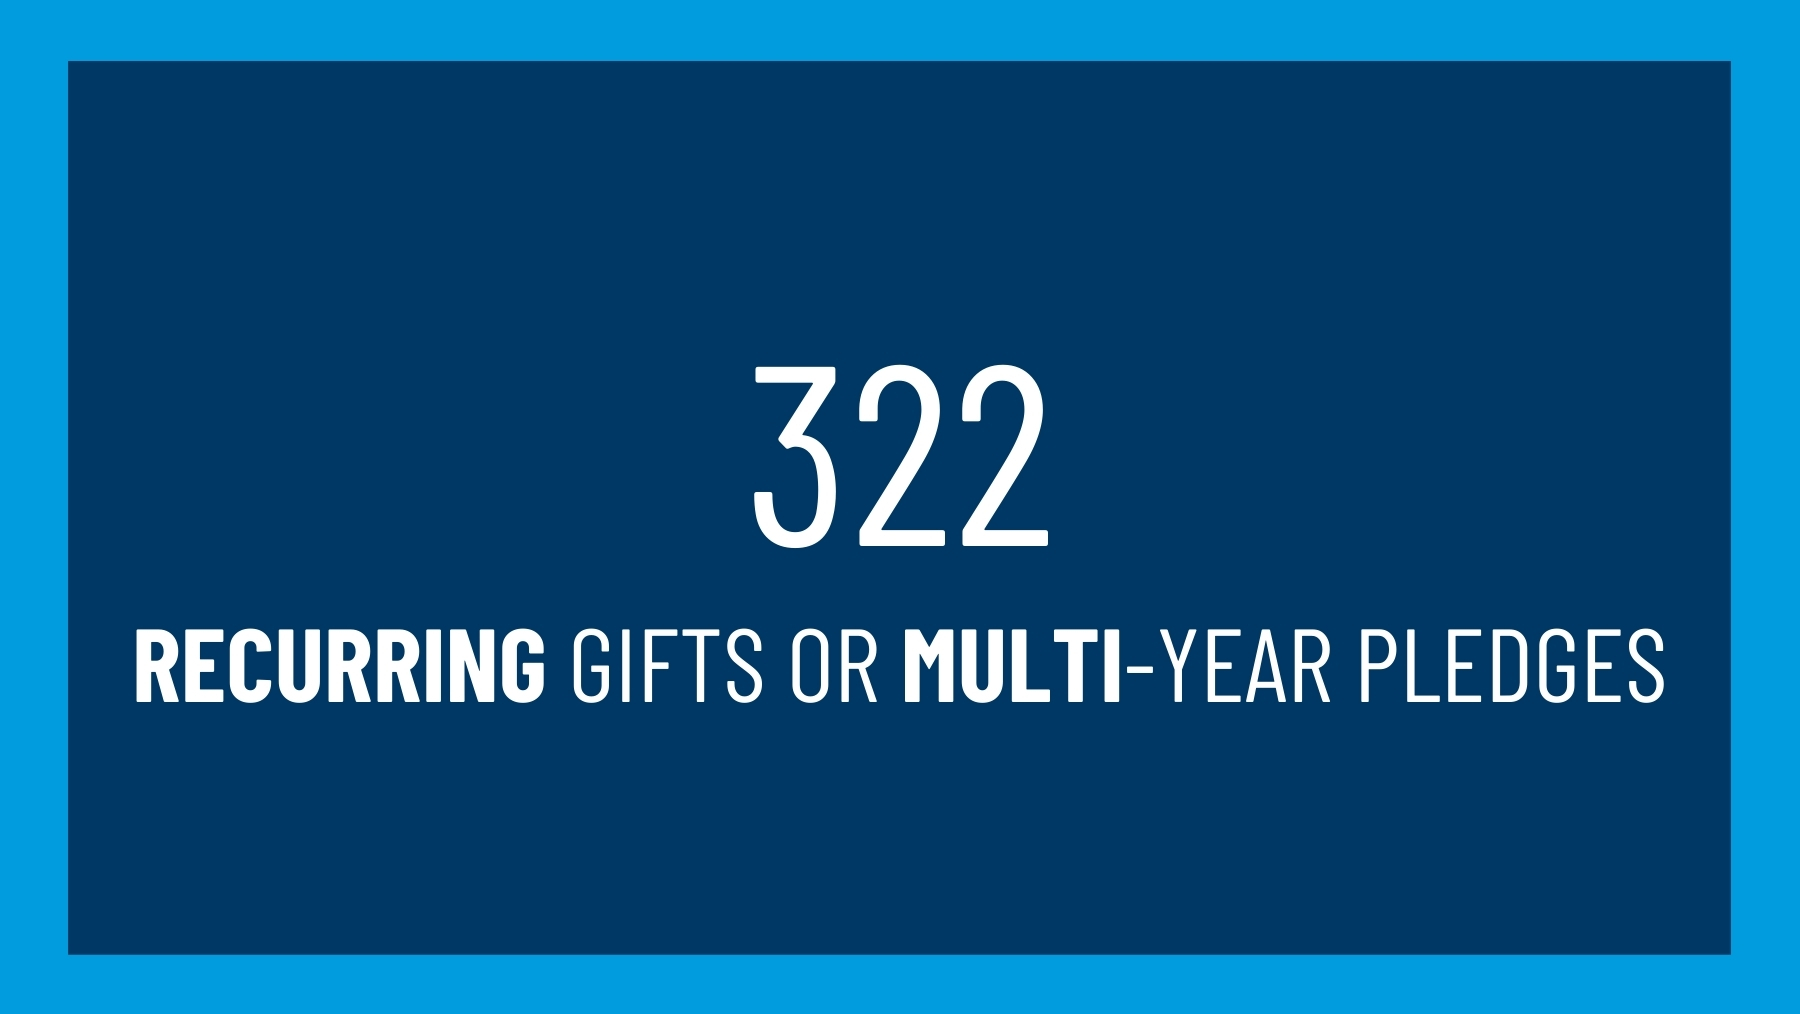 322 recurring gifts or multi-year pledges